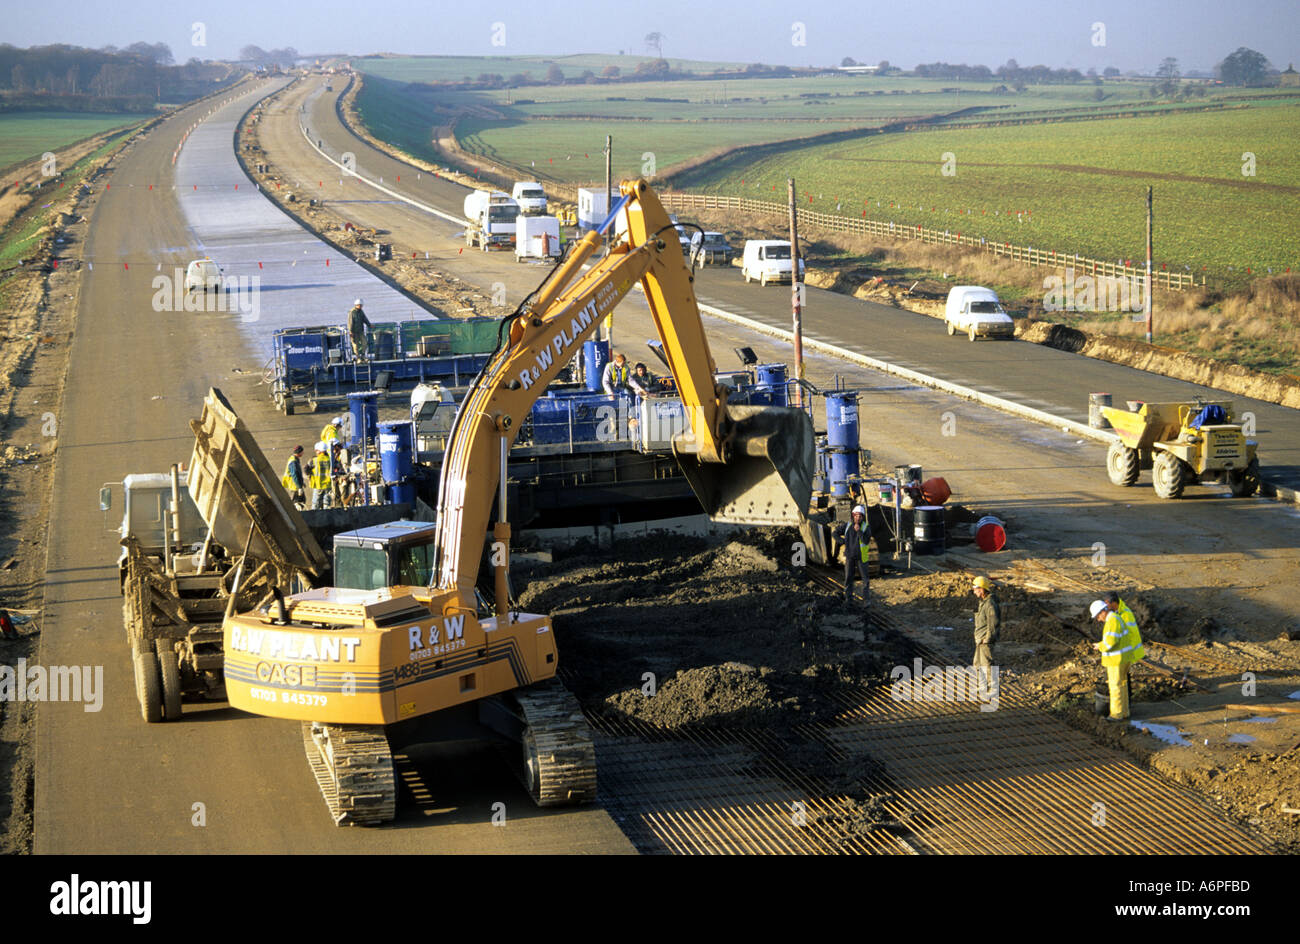 road construction machinery and workers building a1 m1 link road